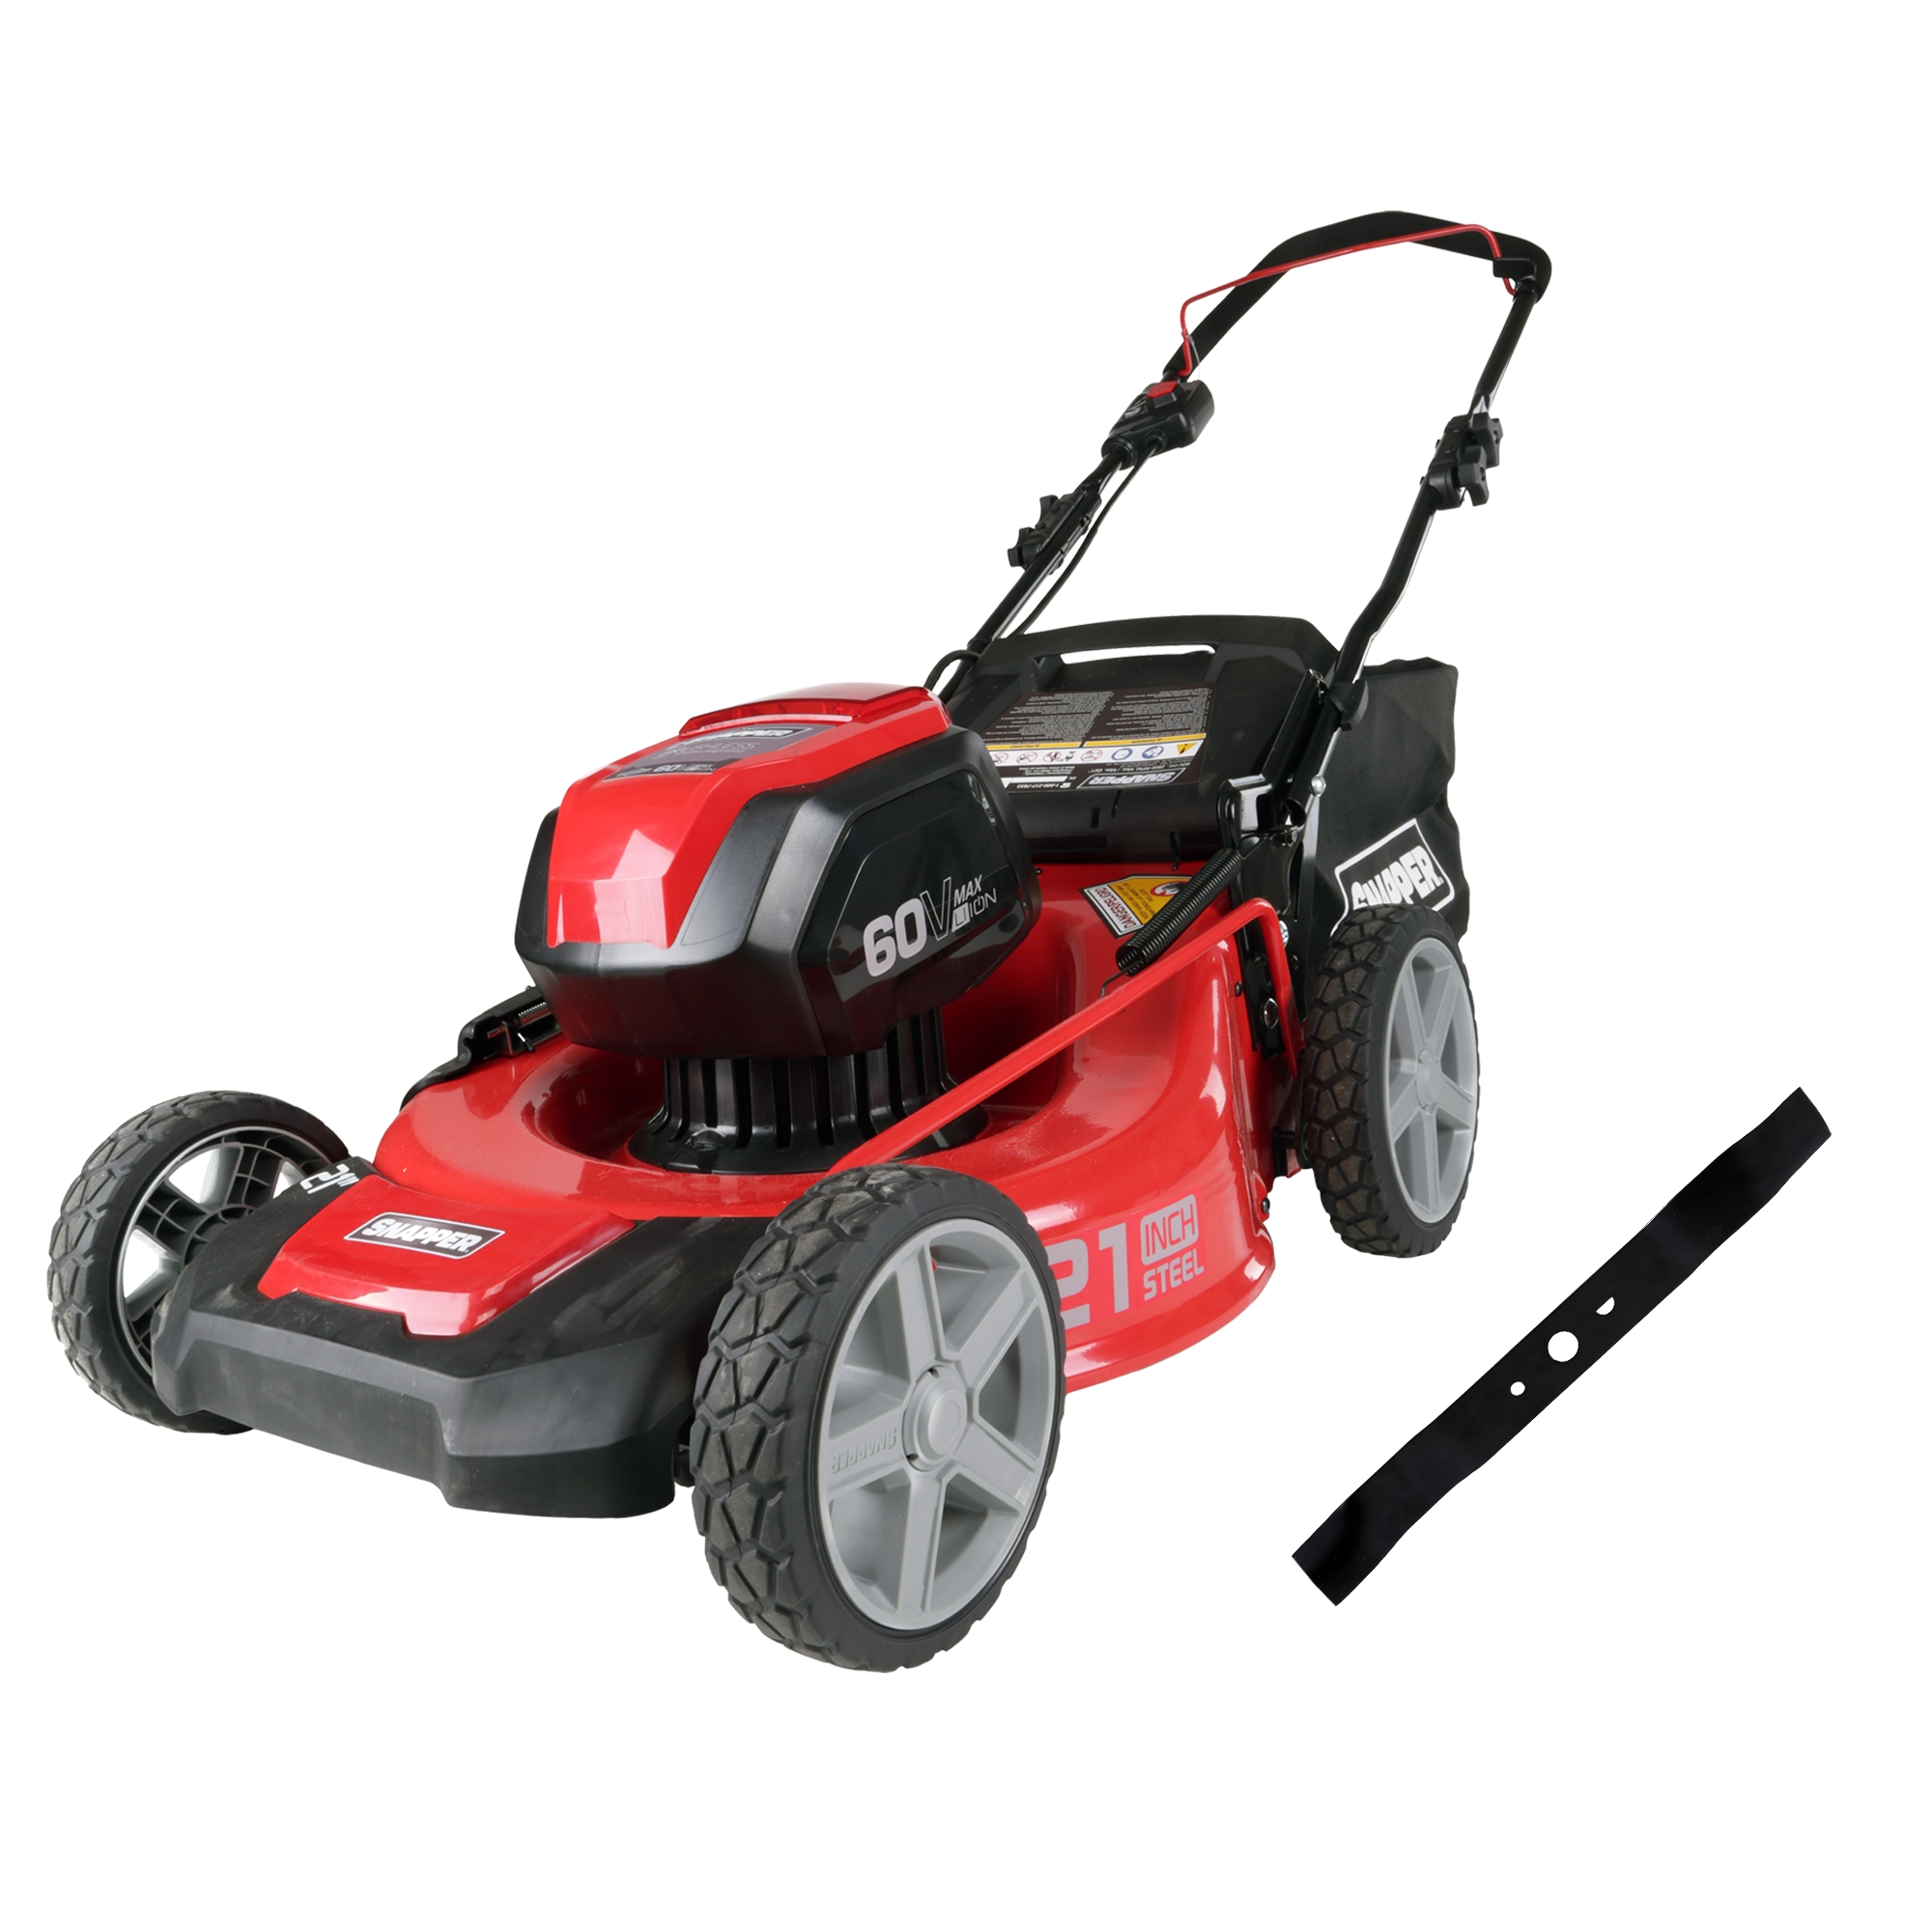 "Snapper 21"" 60V Mower, 4ah Battery and Charger Included SP60V + Replacement Mower Blade"